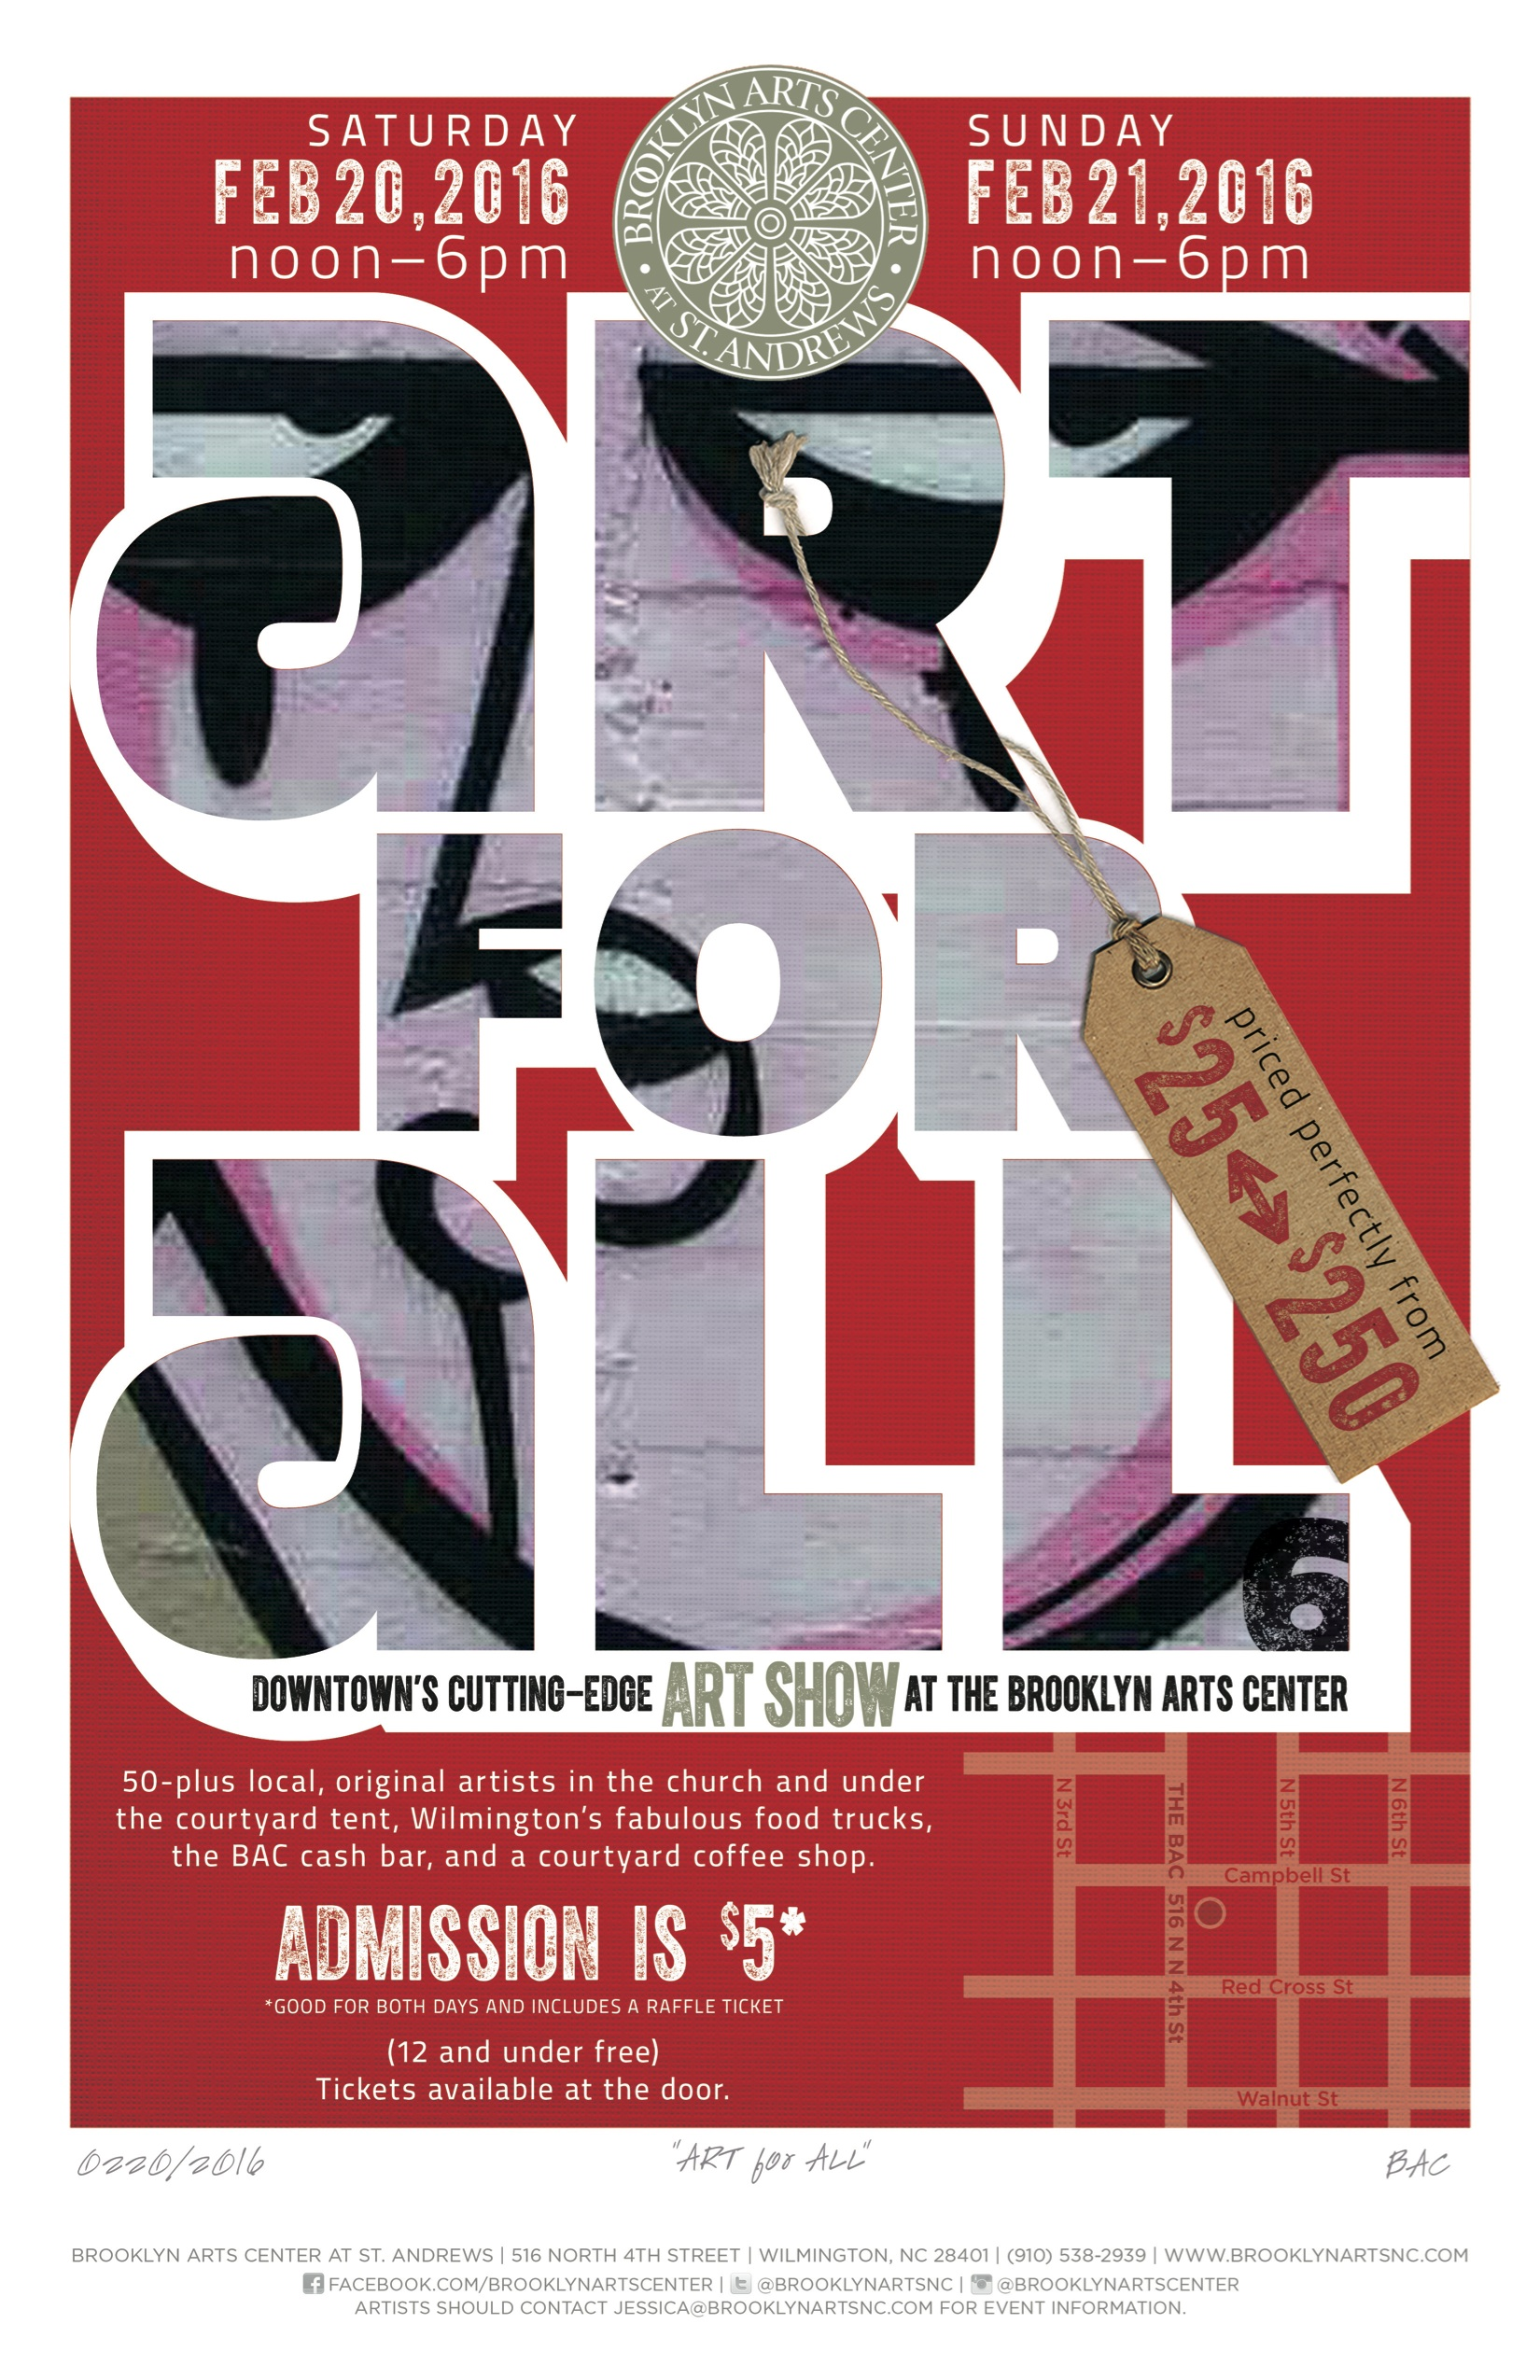 BAC_1685-art for all 6-poster